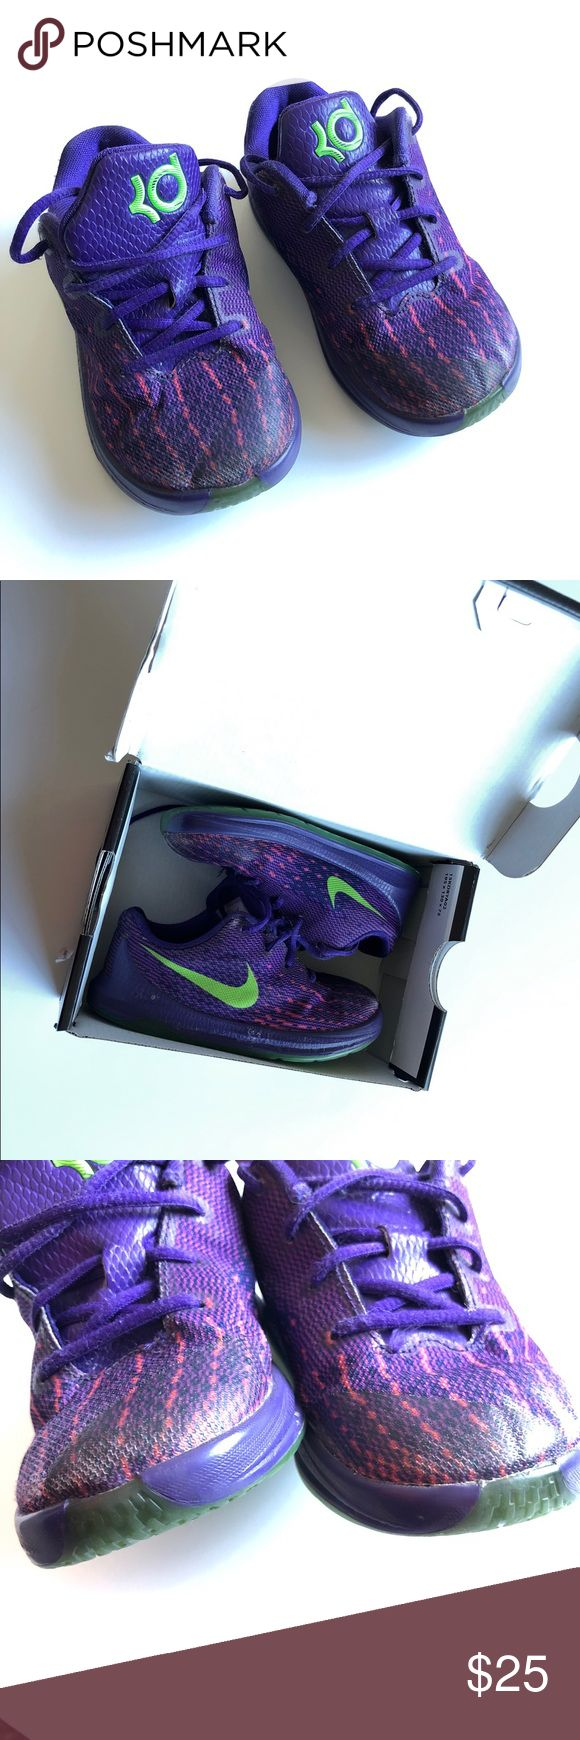 Nike Kd Sneakers Purple lace up sneakers shoe some wear will send with original box Nike Shoes Sneakers